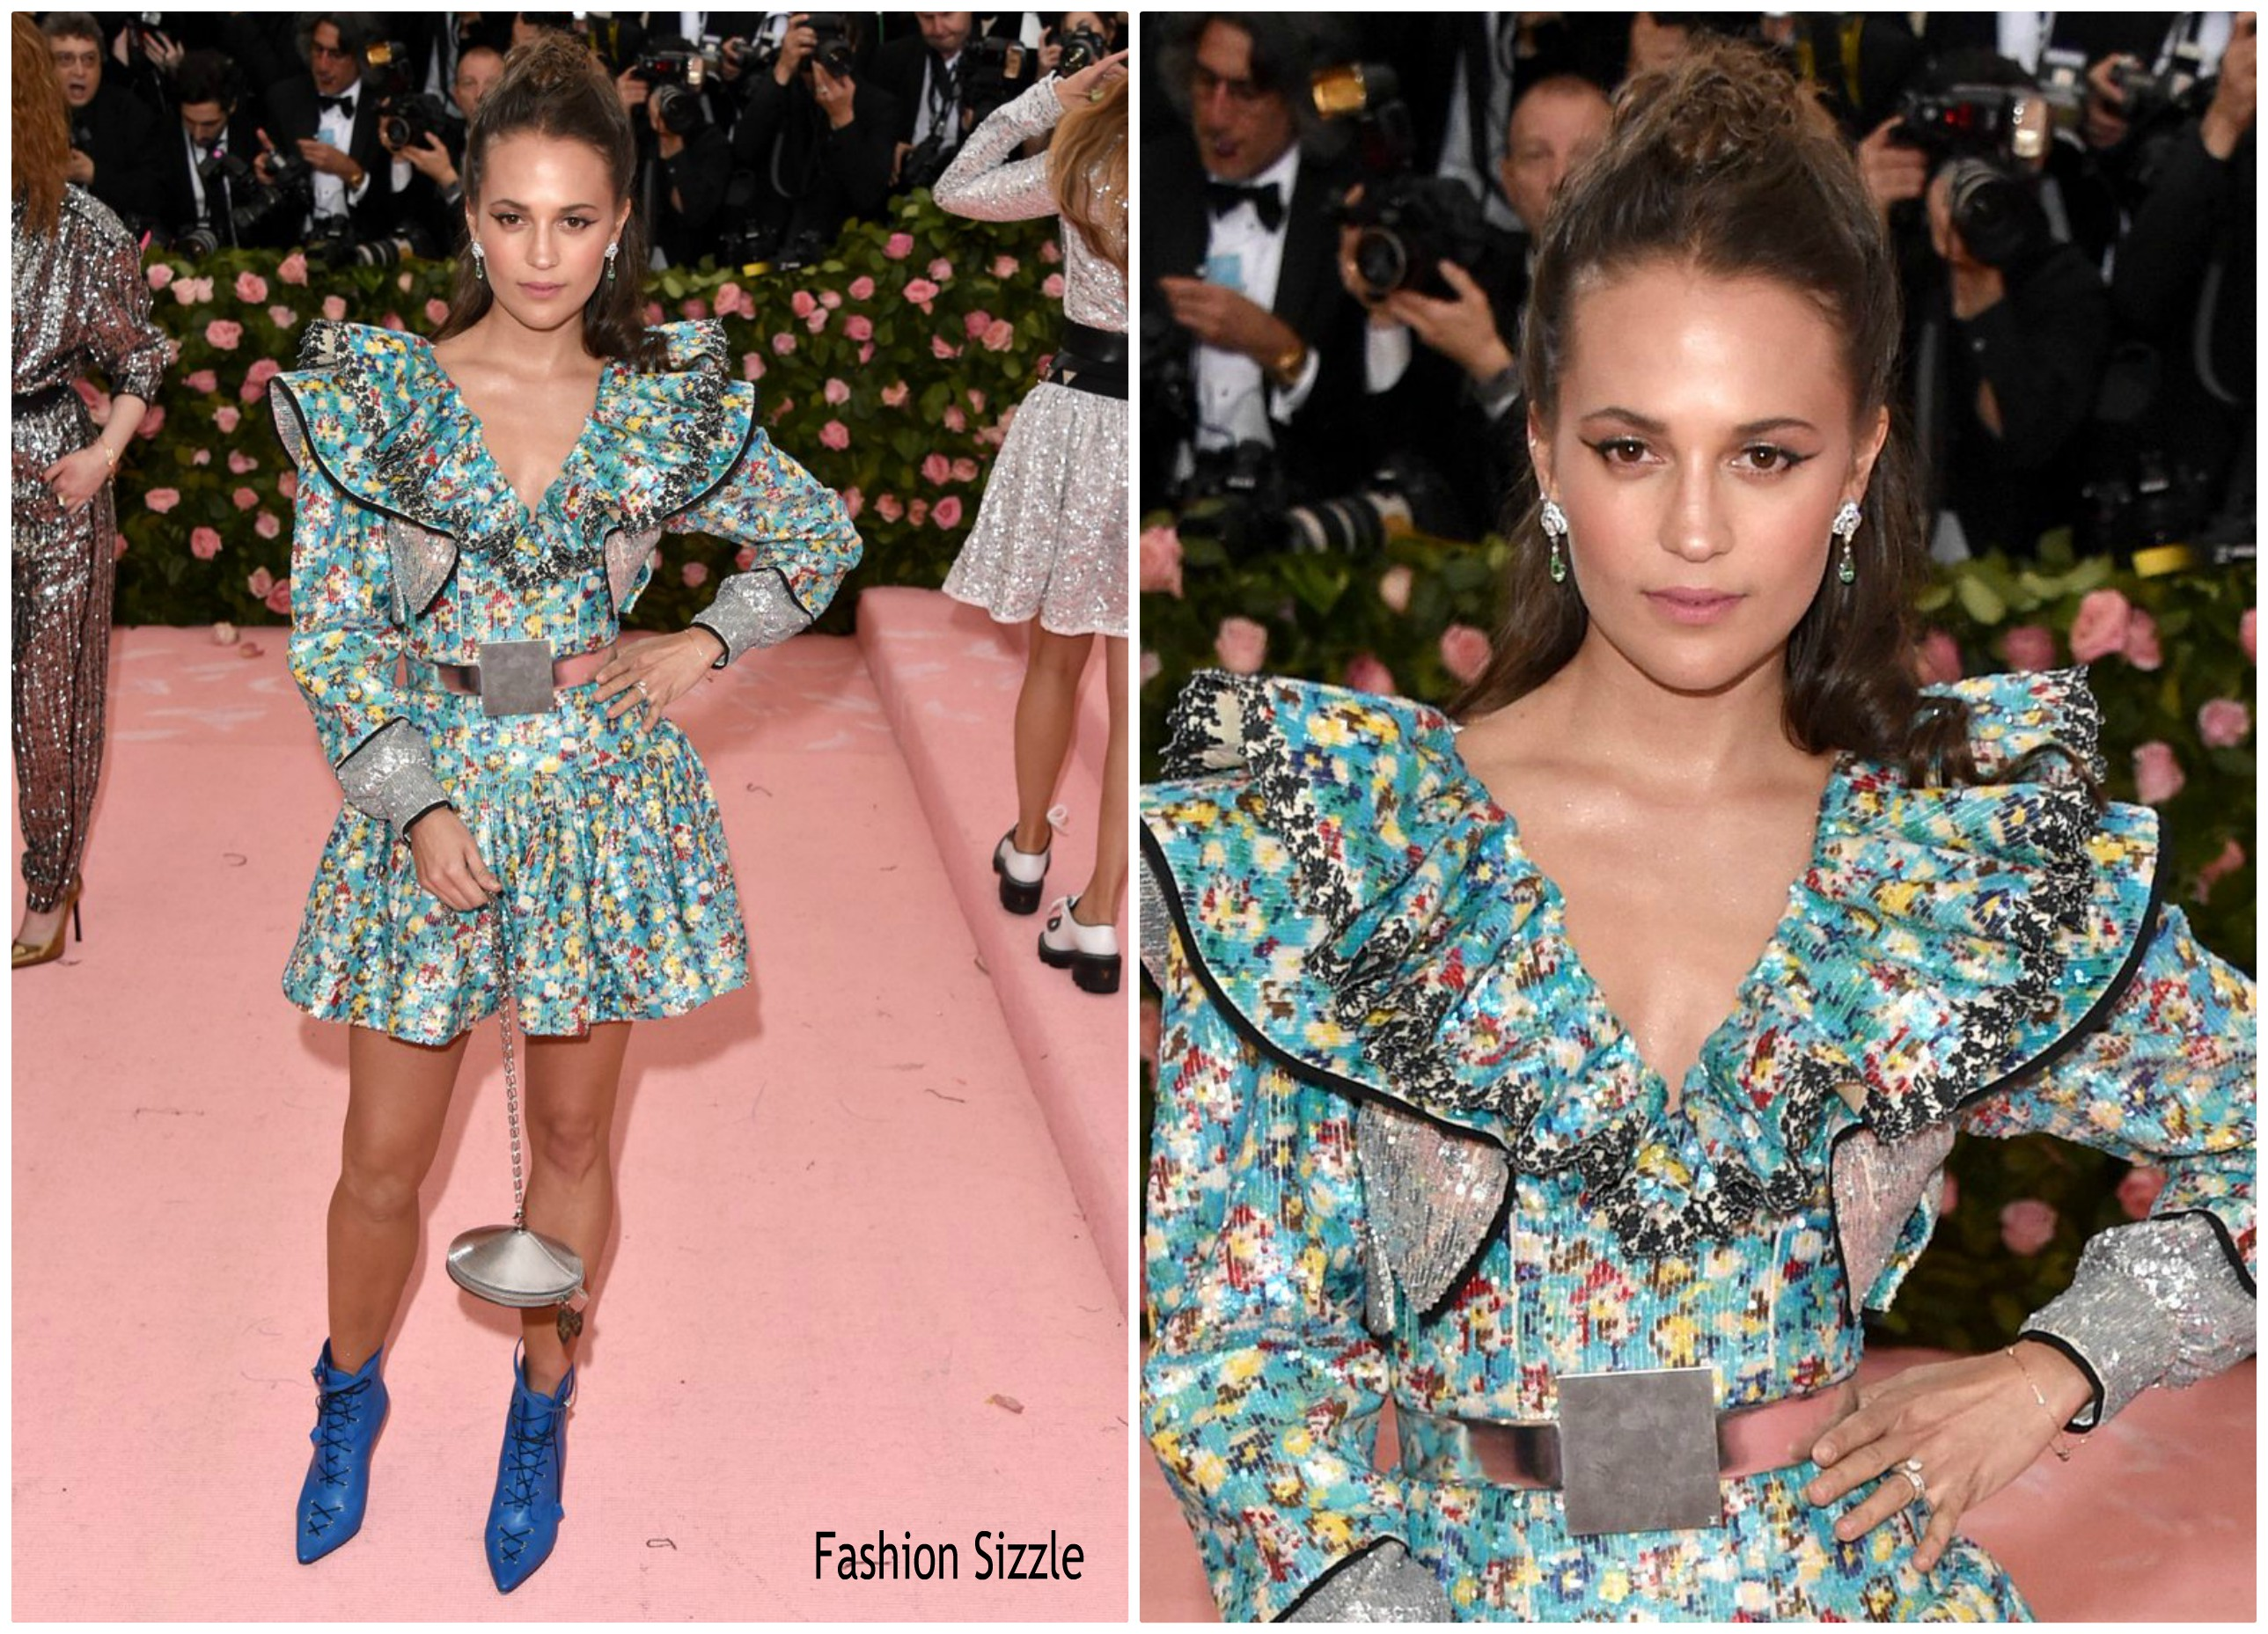 alicia-vikander-in-louis-vuitton-2019-met-gala